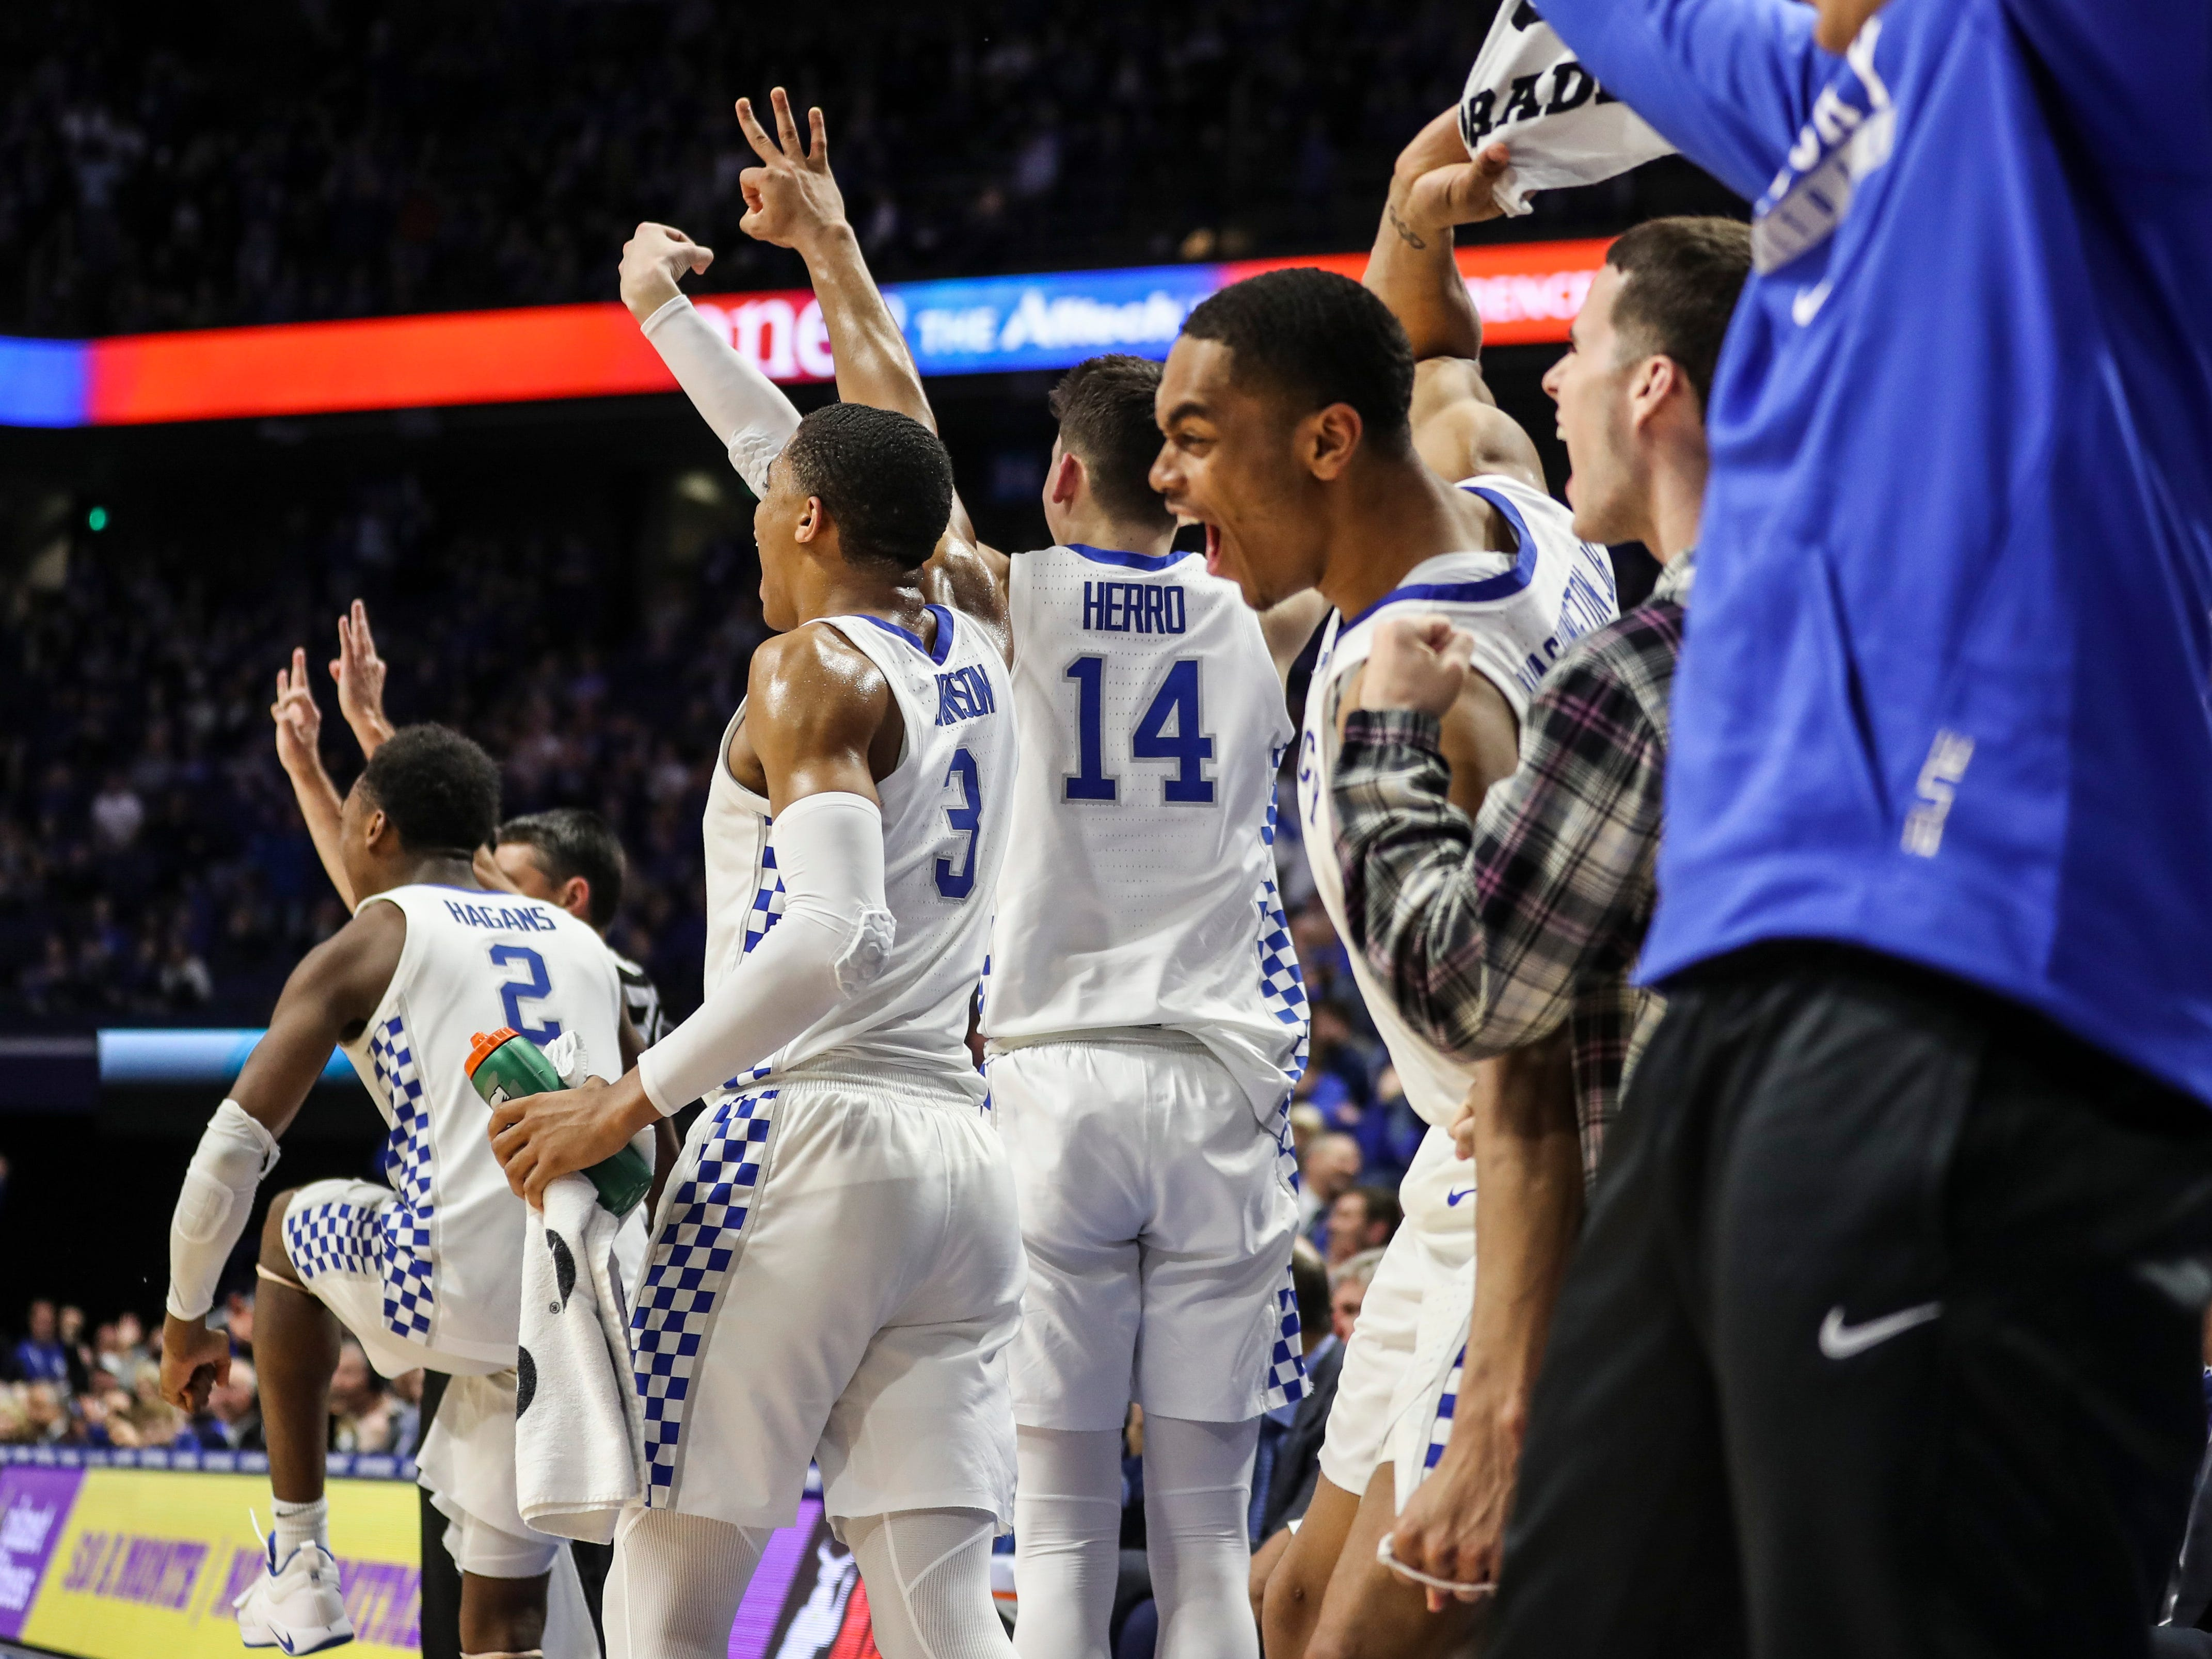 Kentucky's PJ Washington Jr celebrates from the sidelines late in the second half as the Wildcats cruised past South Carolina 76-48. Washington had 20 points and was 2-for-4 for three-point shots. Feb. 5, 2019